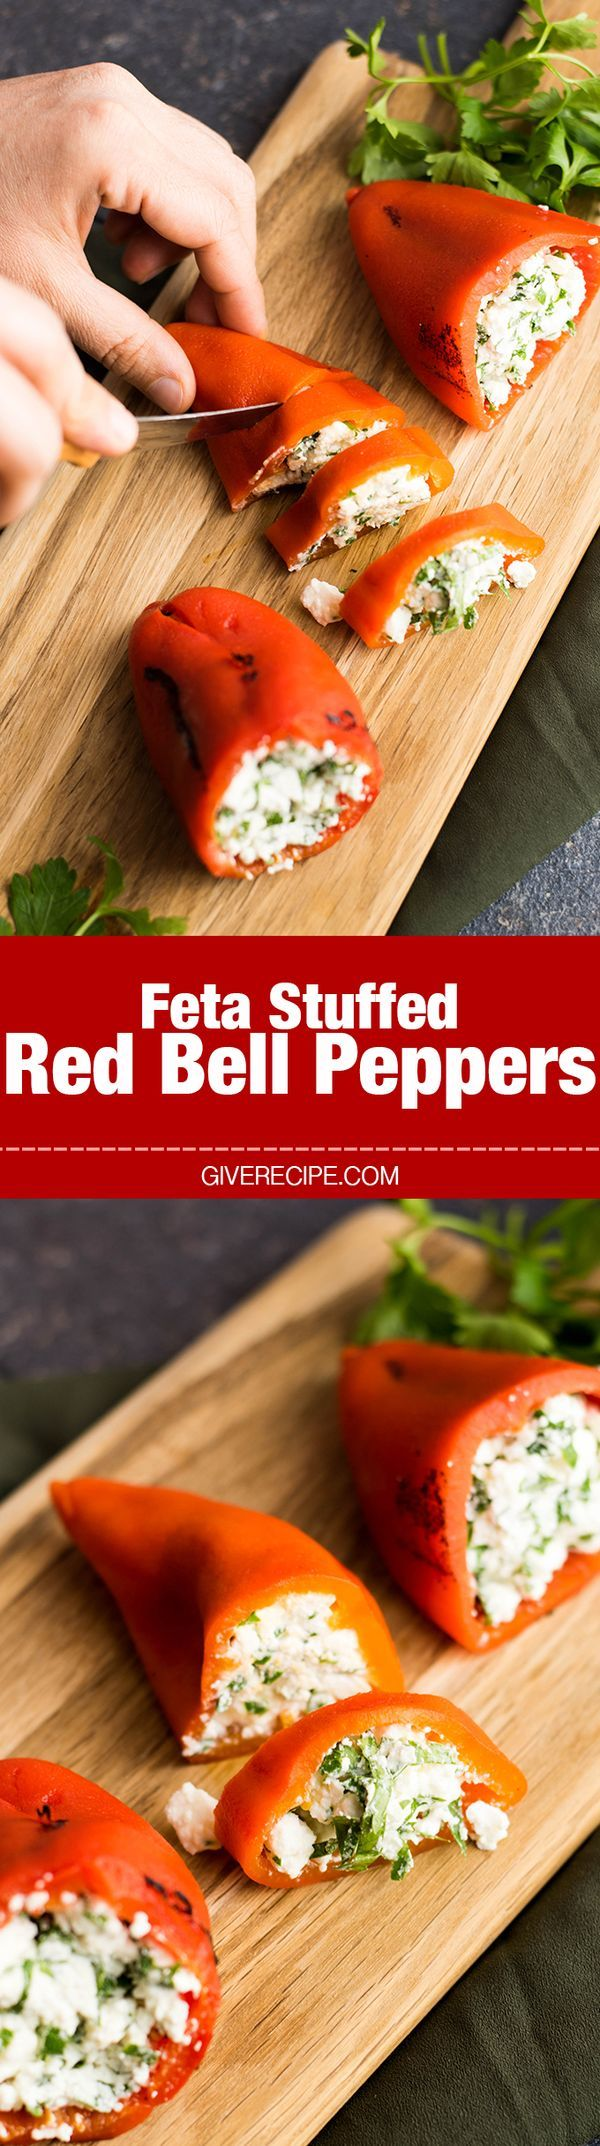 Roasted red bell peppers are stuffed with a mixture of feta, Greek yogurt, garlic and parsley. Can't think of a better combination! This is always the WINNER appetizer at parties! - giverecipe.com